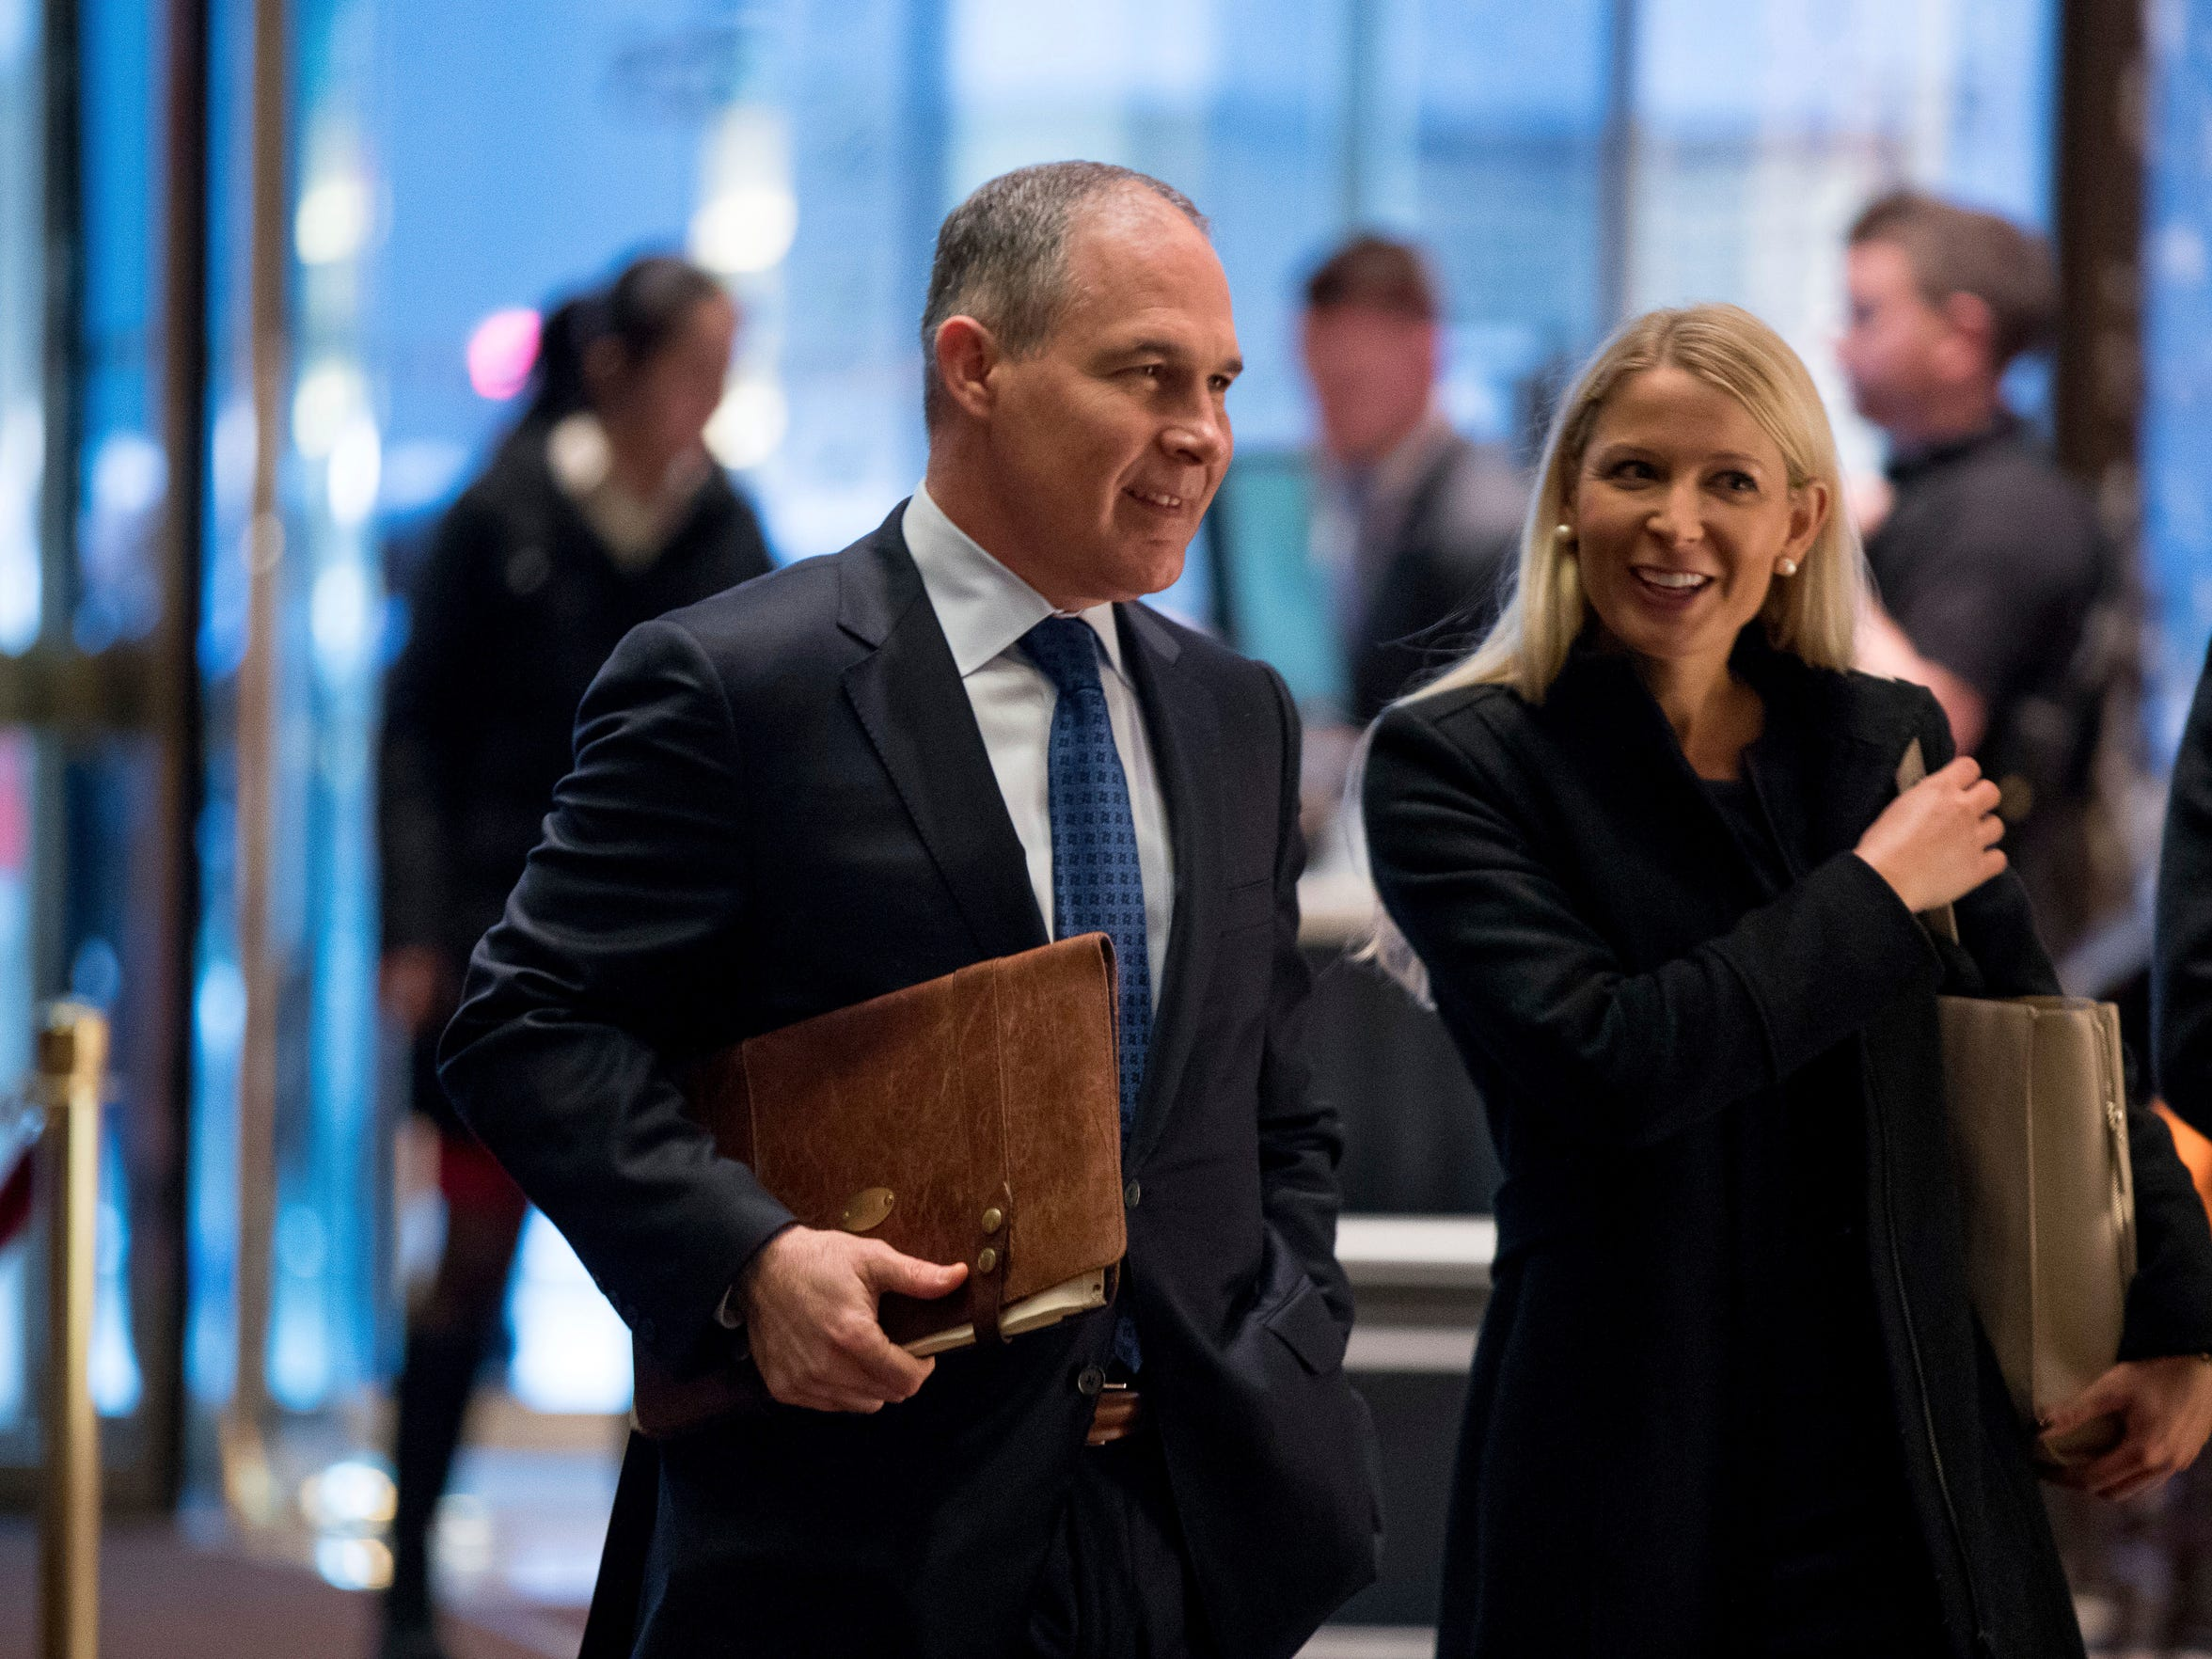 Oklahoma Attorney General Scott Pruitt arrives at Trump